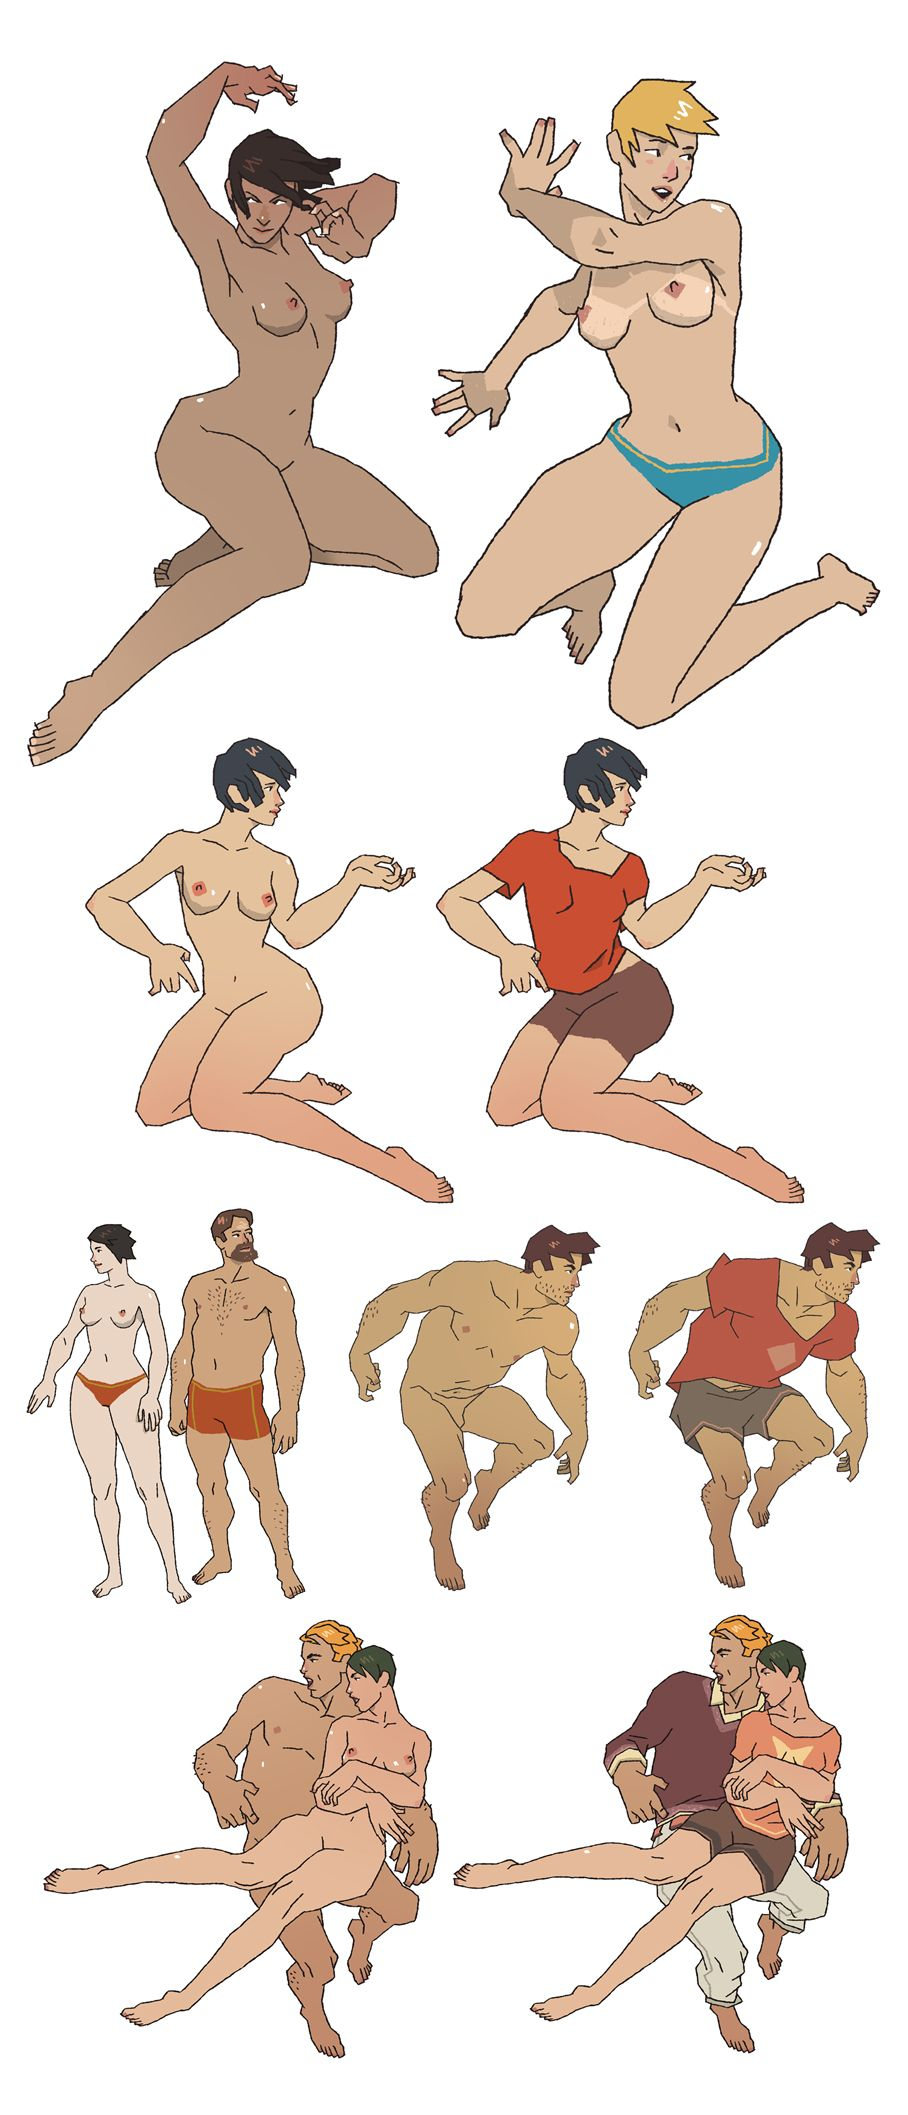 toppless season! by ~honkfu on deviantART || CHARACTER DESIGN REFERENCES | Find more at https://www.facebook.com/CharacterDesignReferences if you're looking for: #line #art #character #design #model #sheet #illustration #expressions #best #concept #animation #drawing #archive #library #reference #anatomy #traditional #draw #development #artist #pose #settei #gestures #how #to #tutorial #conceptart #modelsheet #cartoon #couples @Character Design References